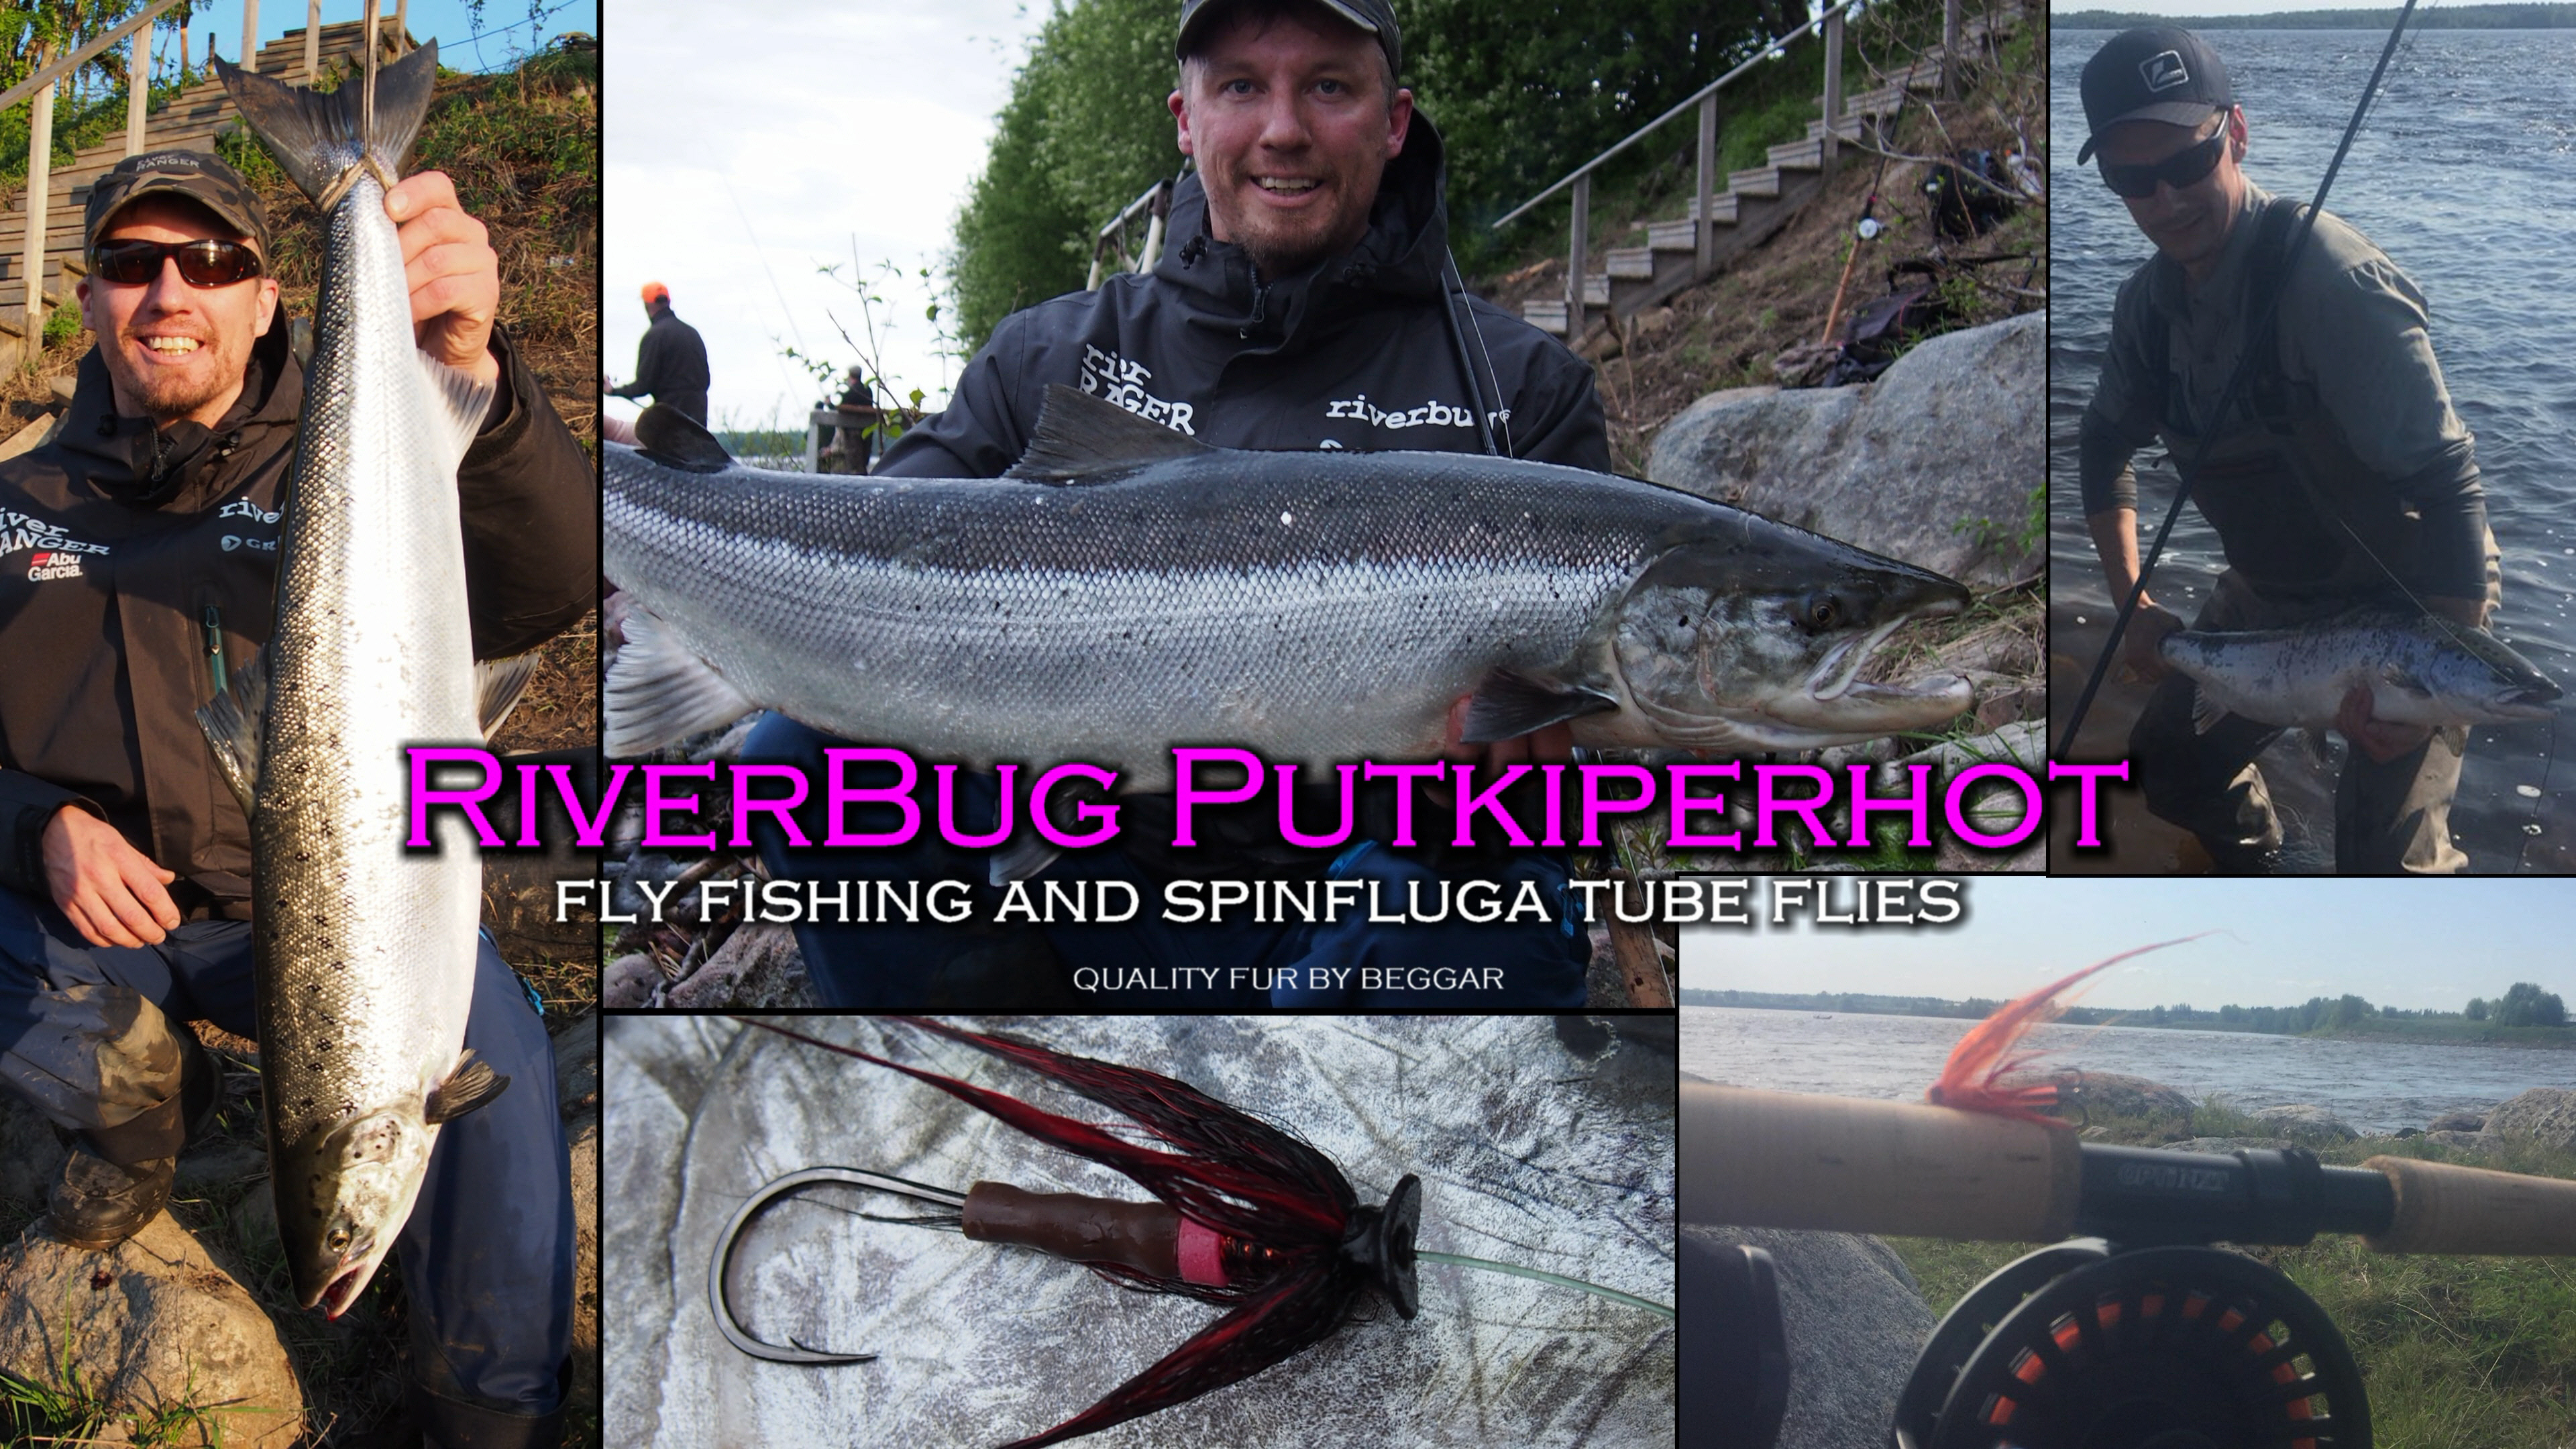 RiverBug tube flies can be used with Fly Fishing gear or with Spinfly (spinfluga) style equipments. #putkiperhot #putkiperho #perhonsidonta #lohi #lax #salmon #lohenkalastus #riverbug #spinfly #spinfluga